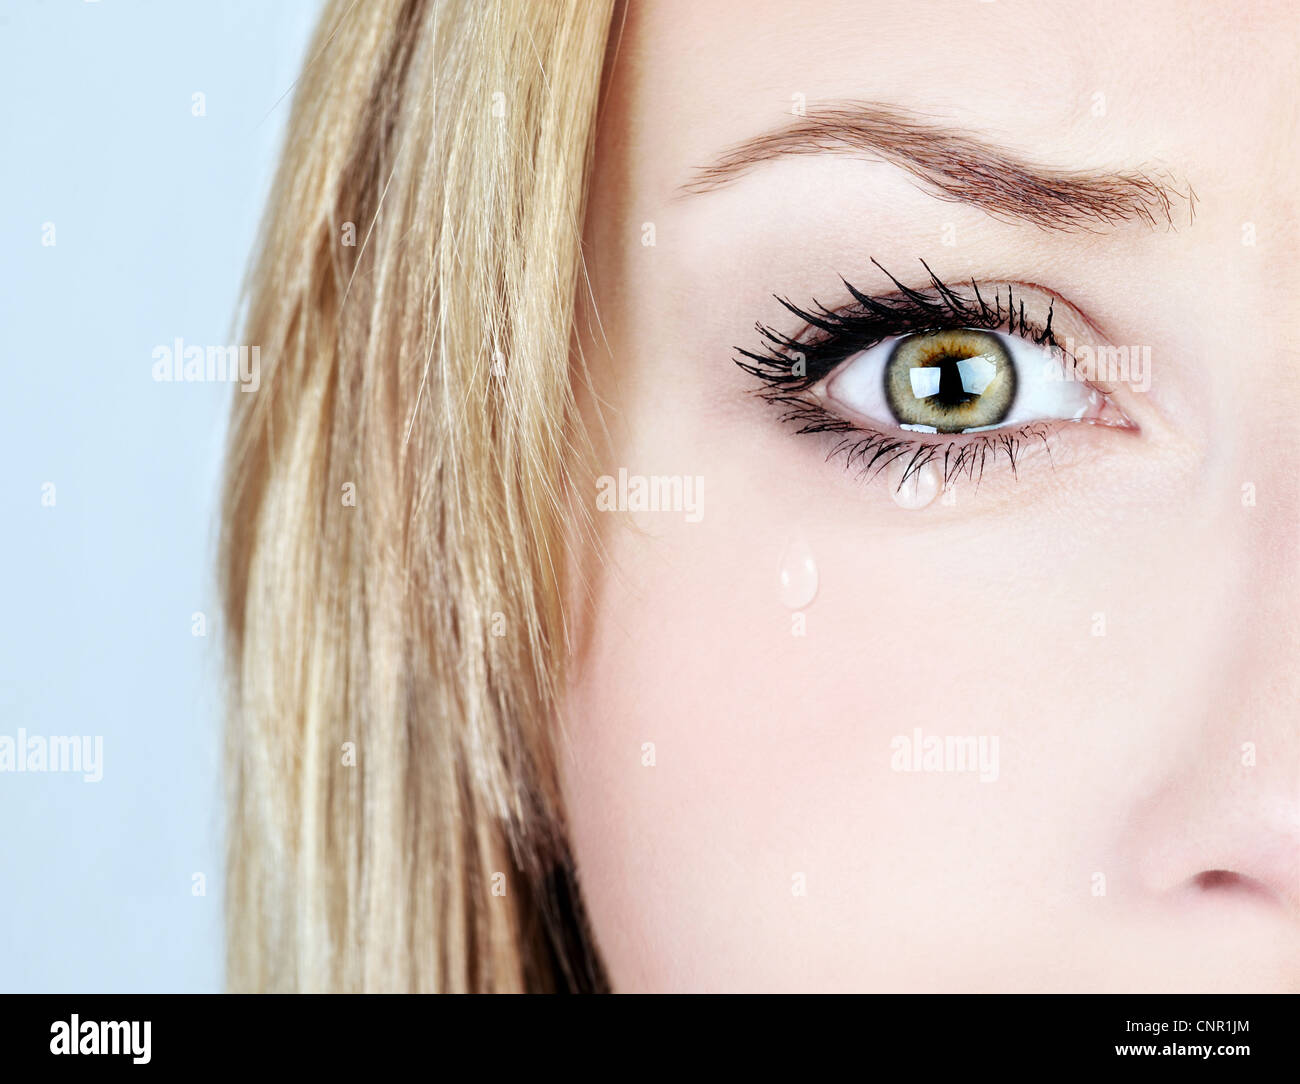 Crying woman, beautiful face with tear drops, facial expression, pain and grief concept - Stock Image